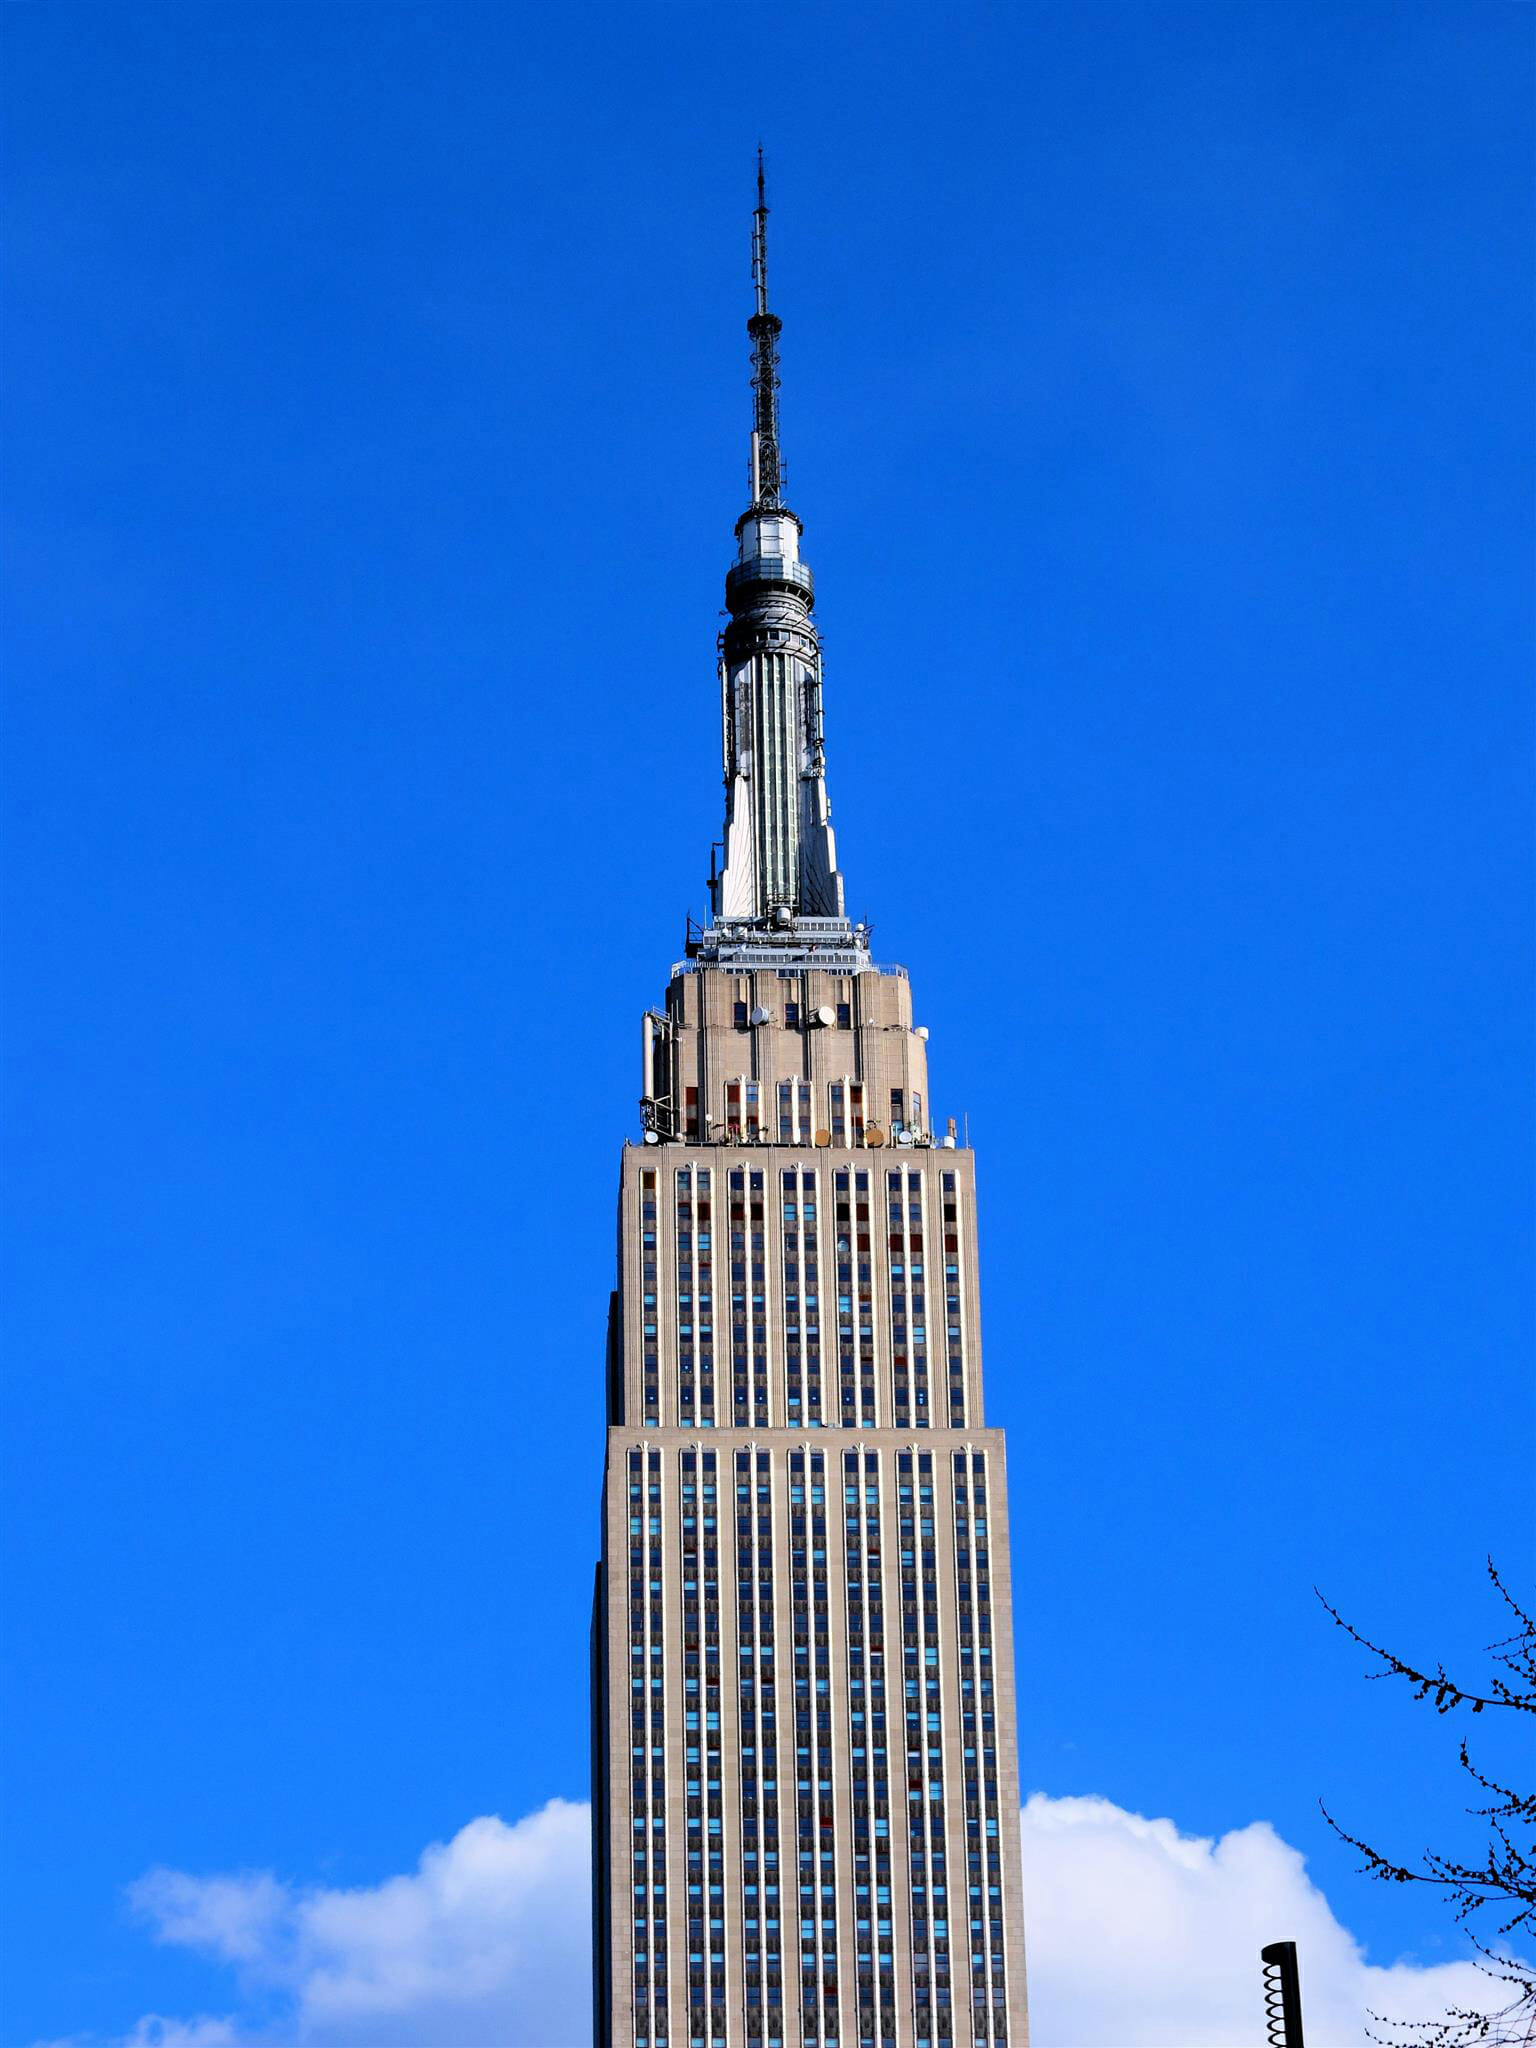 Empire State Building Blue Skies High Quality Wallpaper